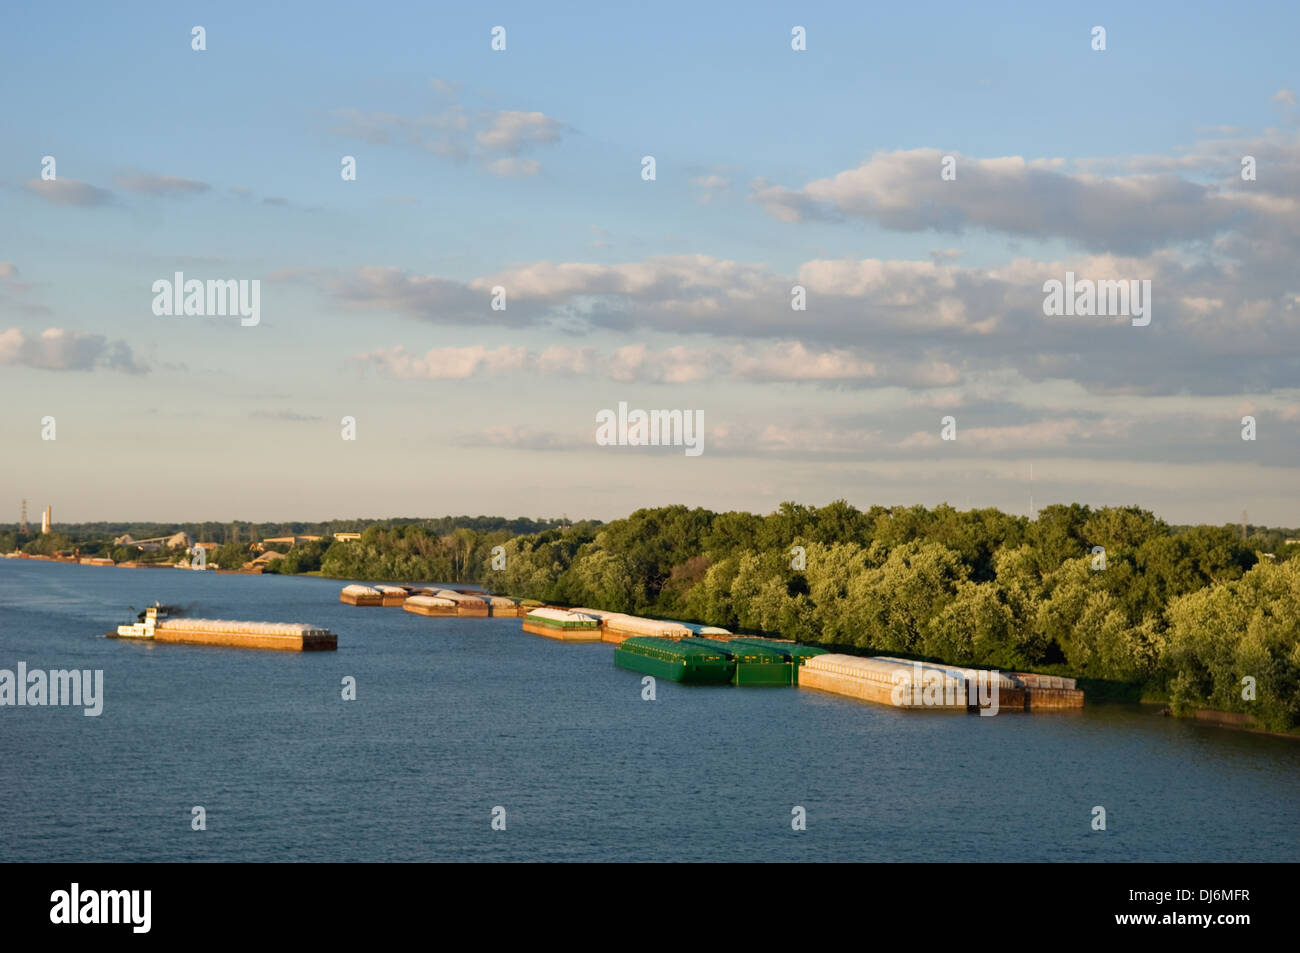 Barges on the Ohio River at Louisville, Kentucky - Stock Image